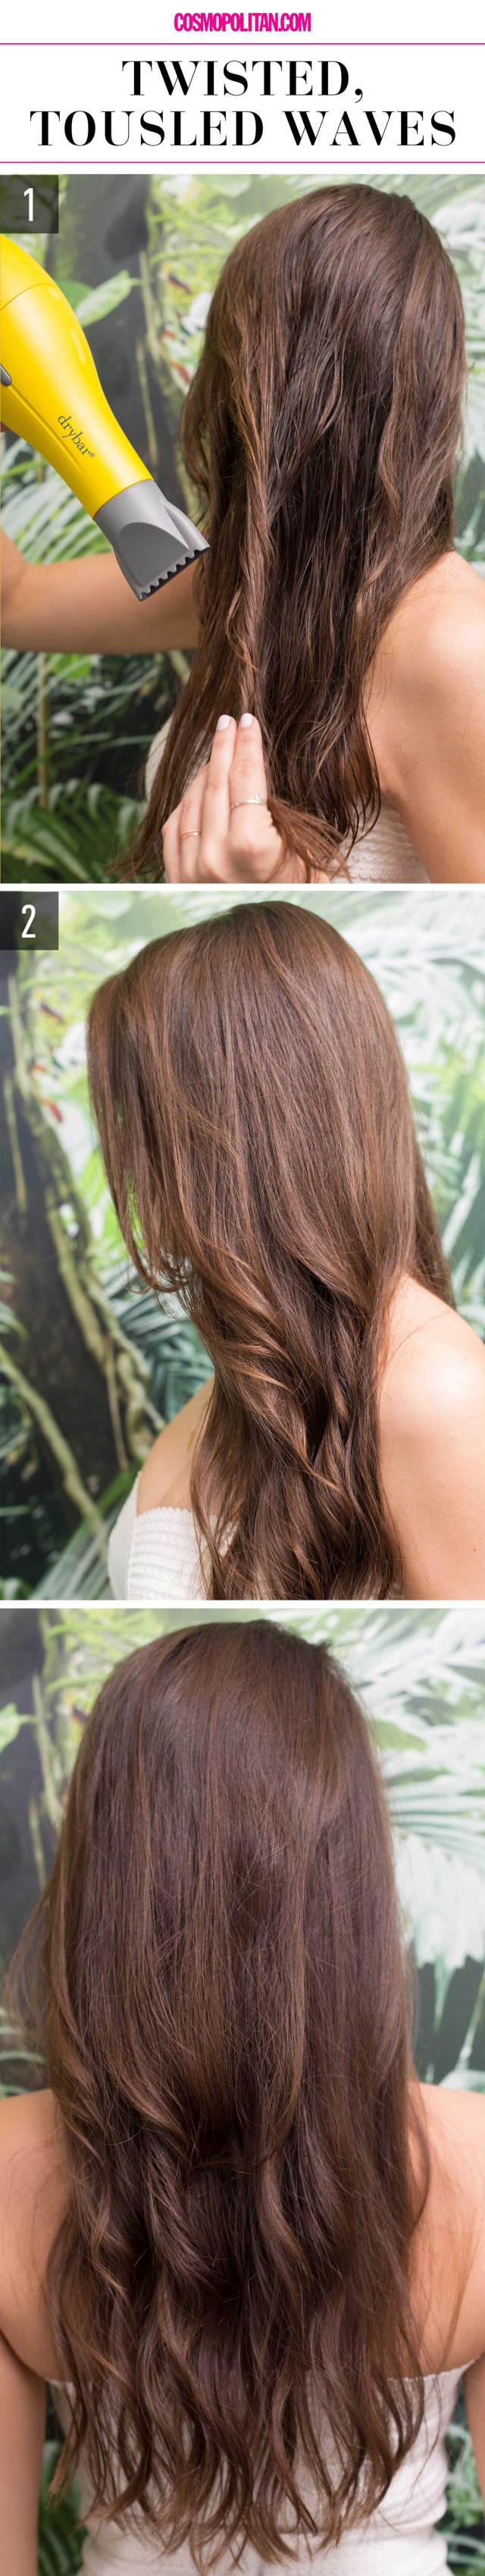 supereasy hairstyles for lazy girls who canut even